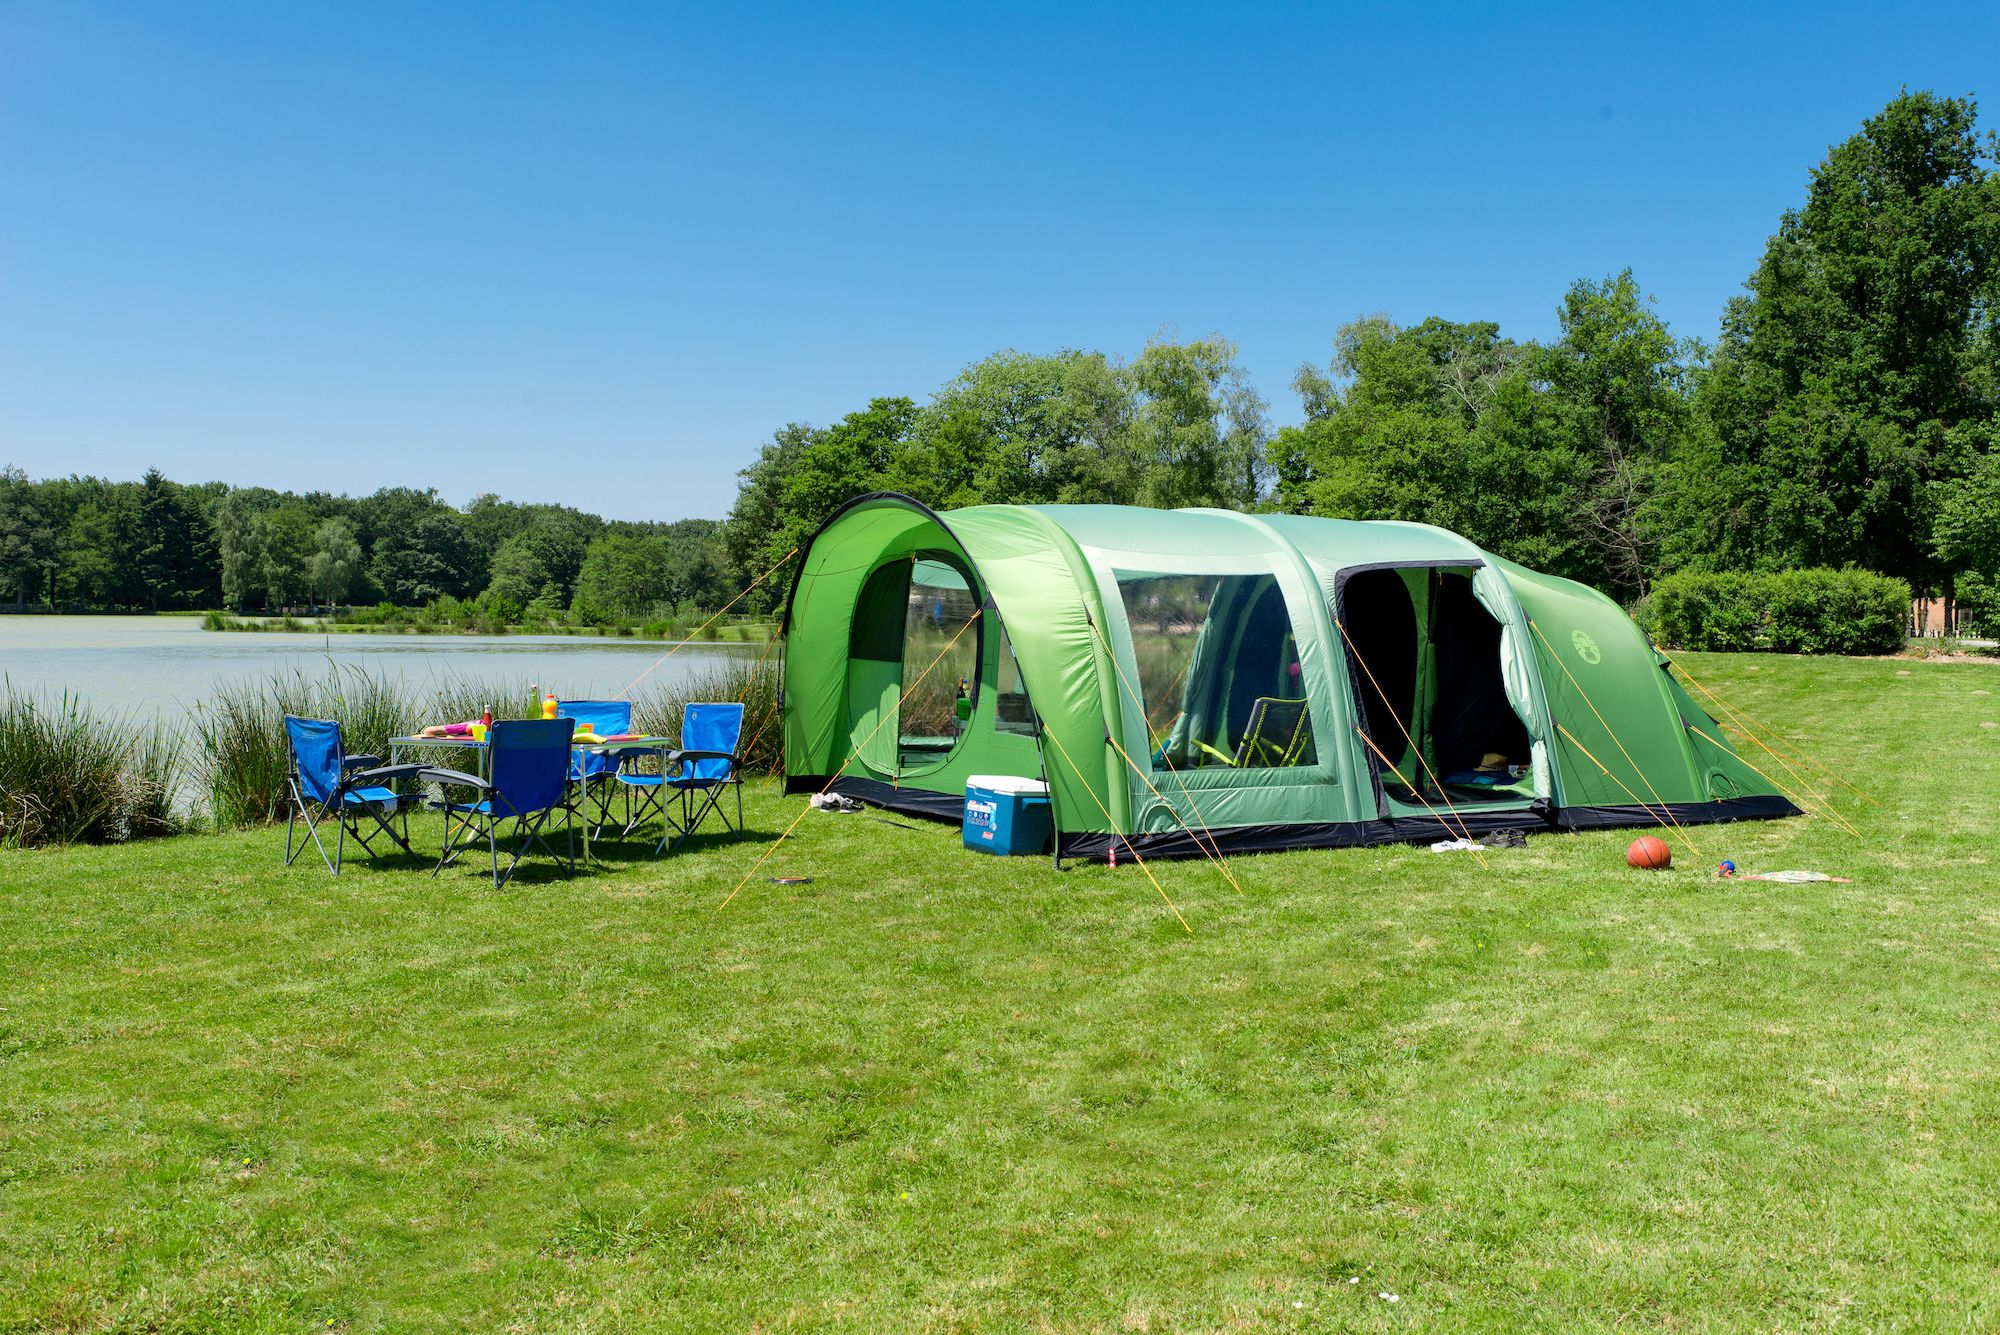 Win a camping gear package worth £1,000!